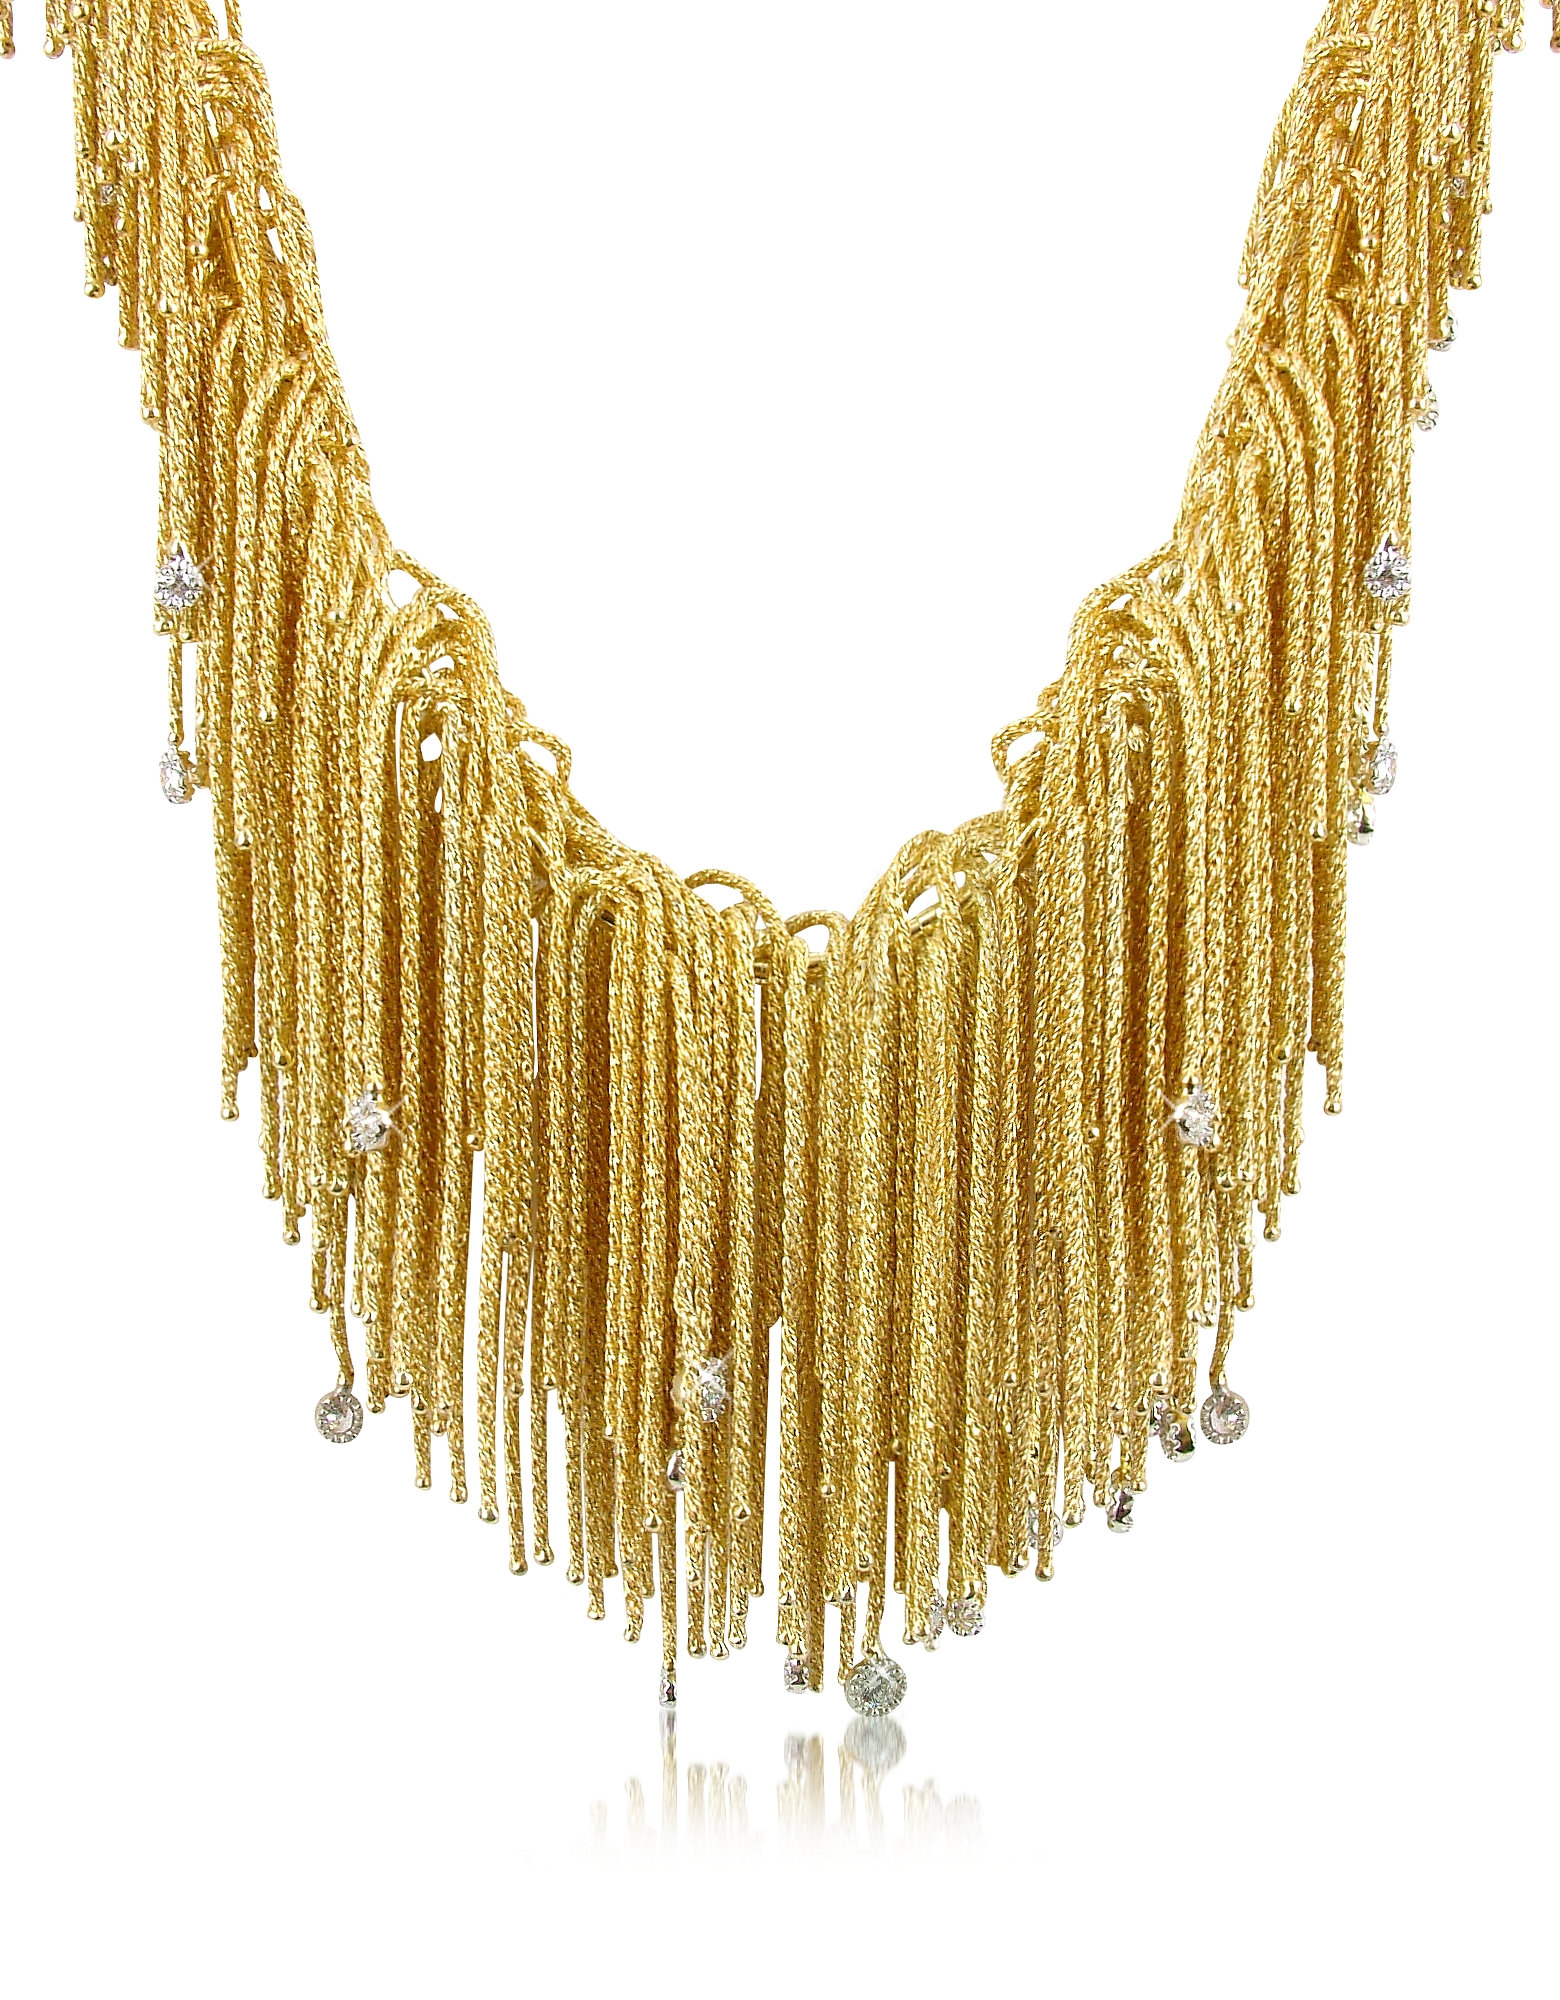 Orlando Orlandini Necklaces, Flirt - Diamond Drops 18K Yellow Gold Thread Necklace